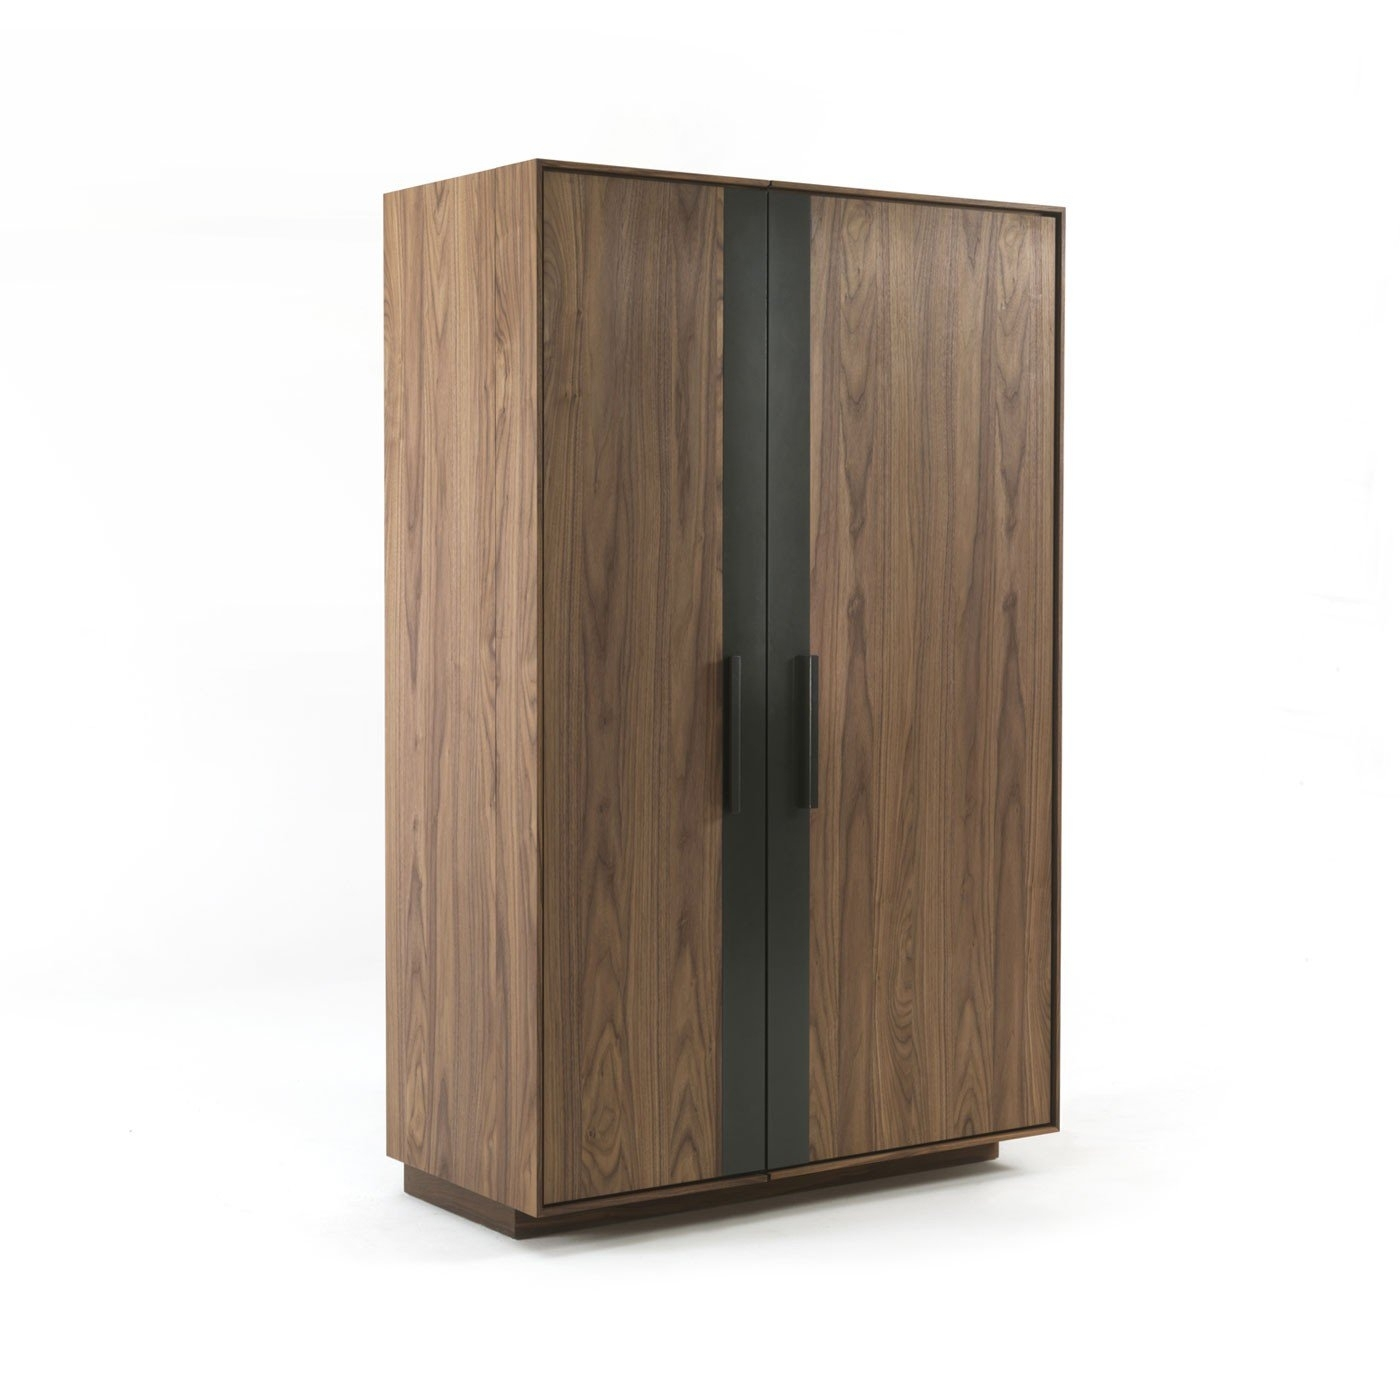 Riva 1920 Cambusa Wine Cabinet Walnut | Heal's in Charcoal Finish 4-Door Jumbo Sideboards (Image 25 of 30)